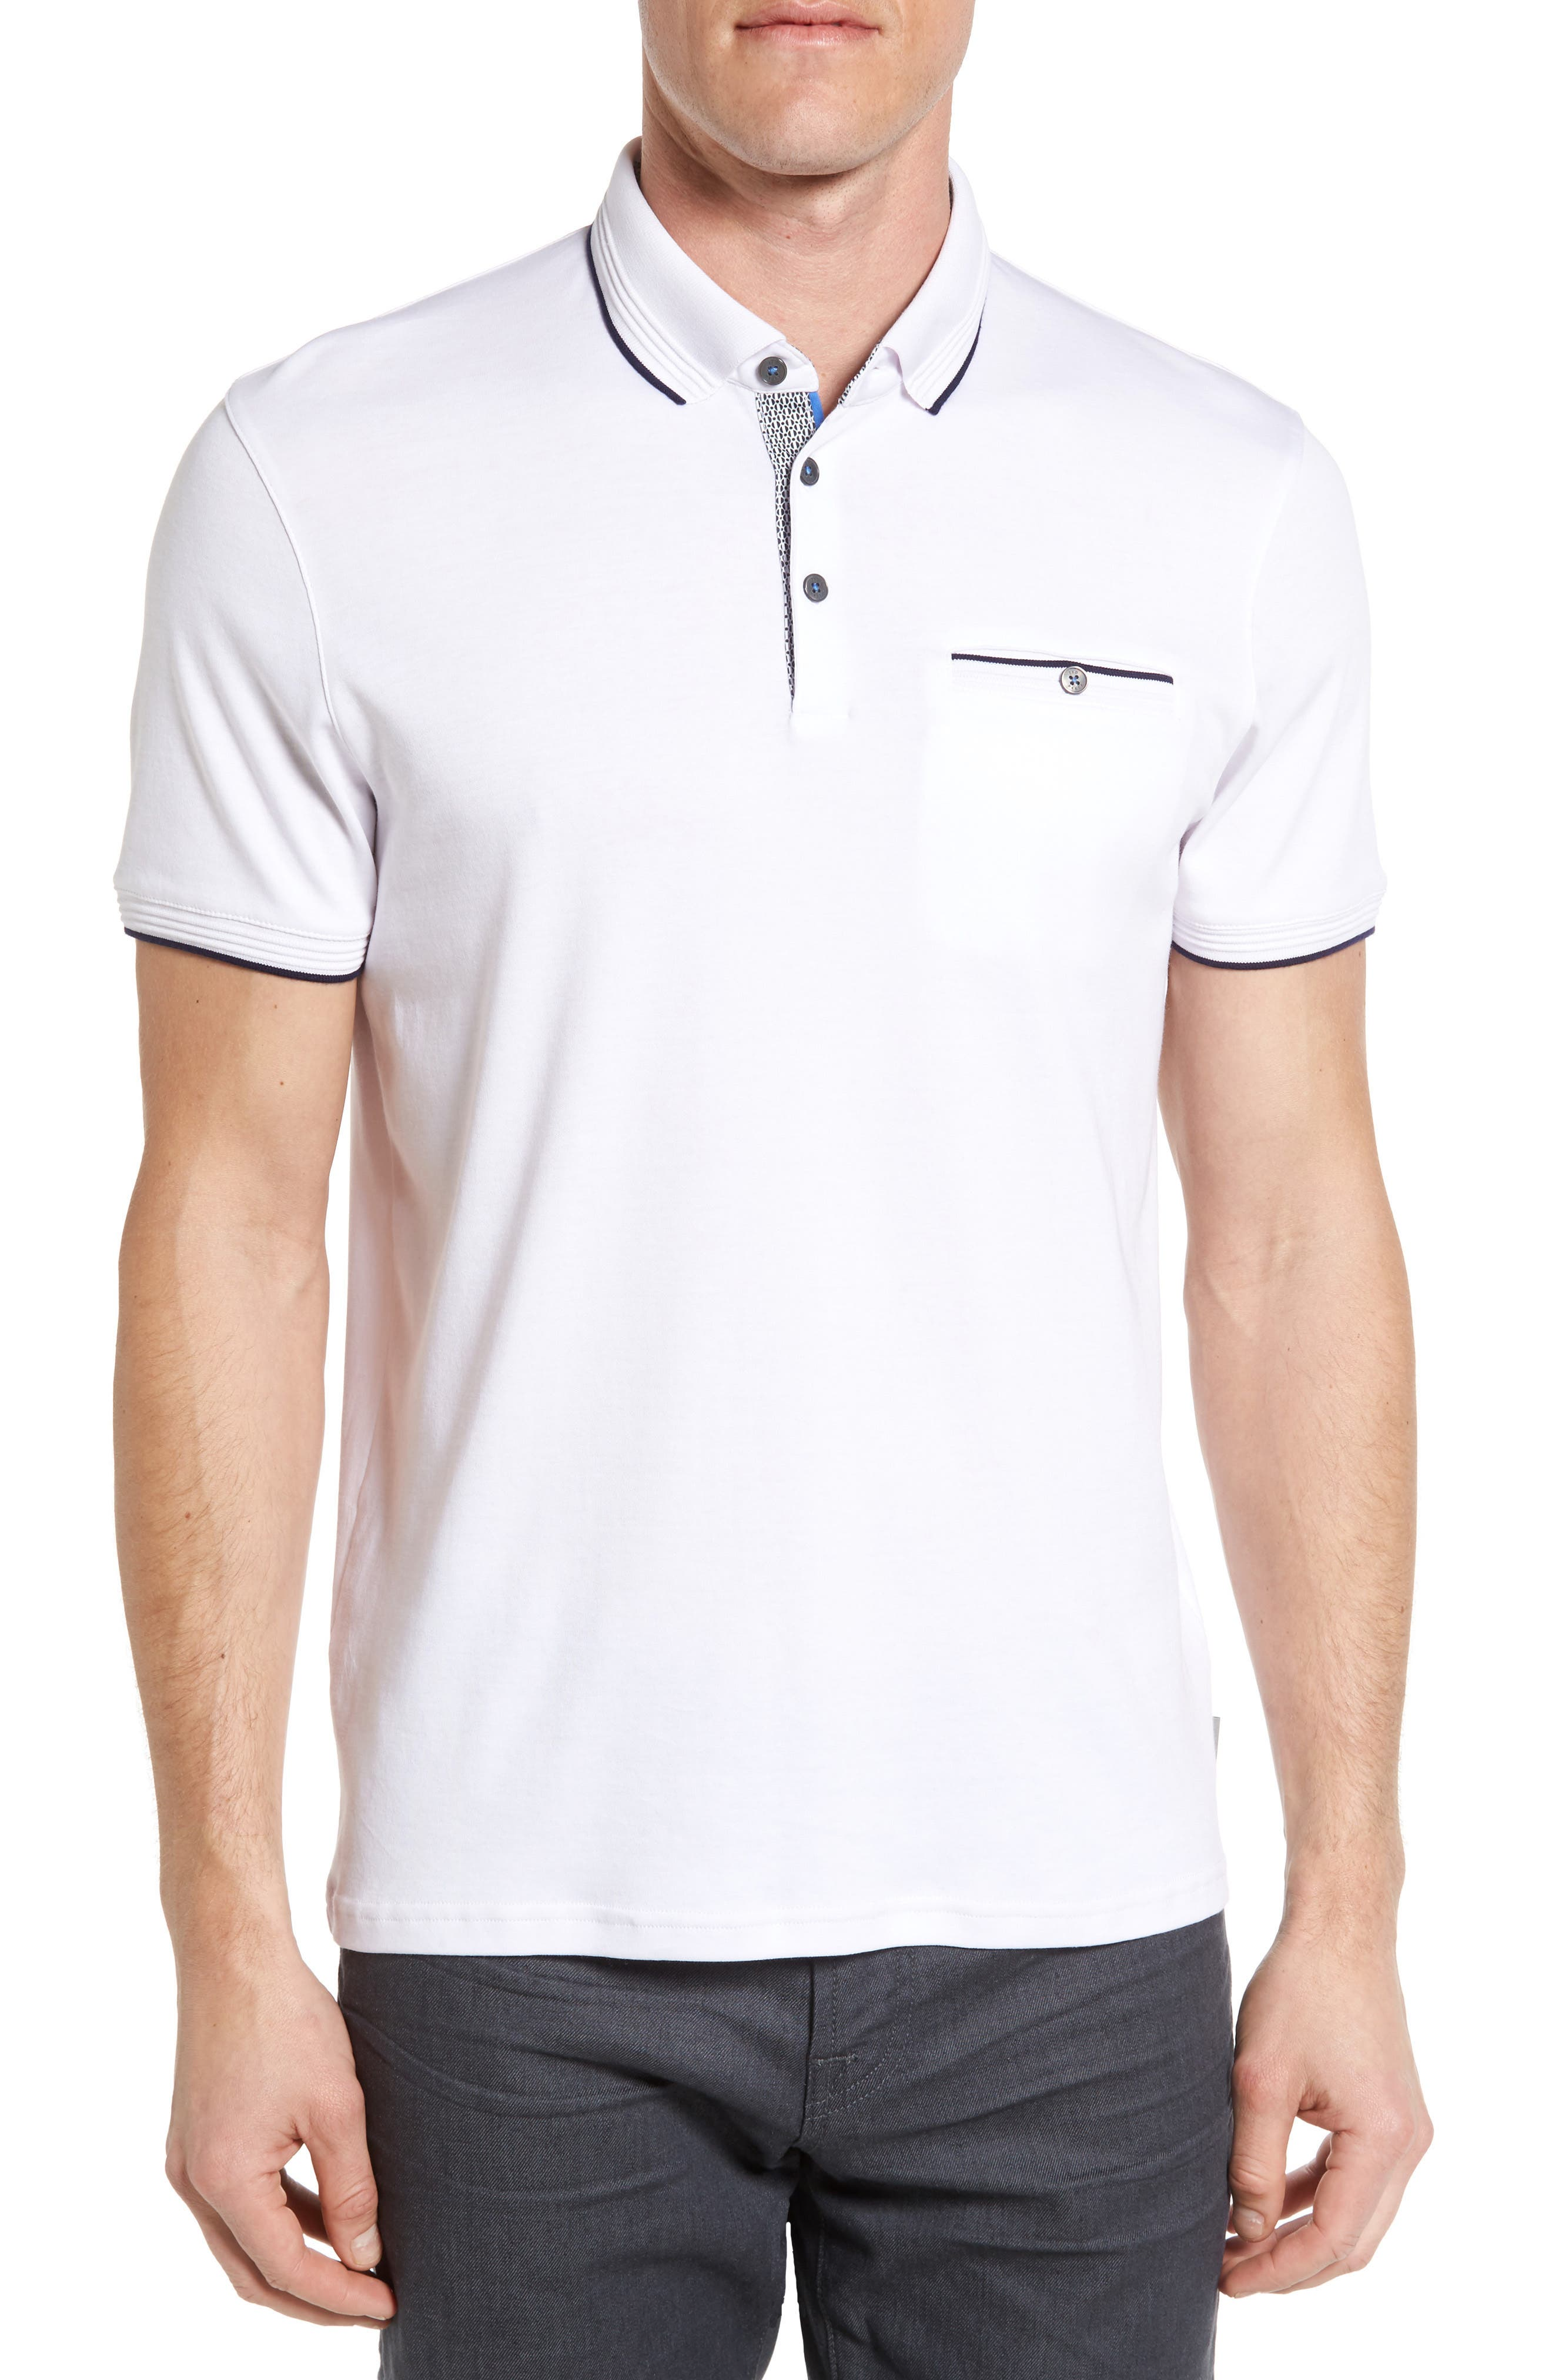 TED BAKER LONDON, Derry Modern Slim Fit Polo, Main thumbnail 1, color, WHITE